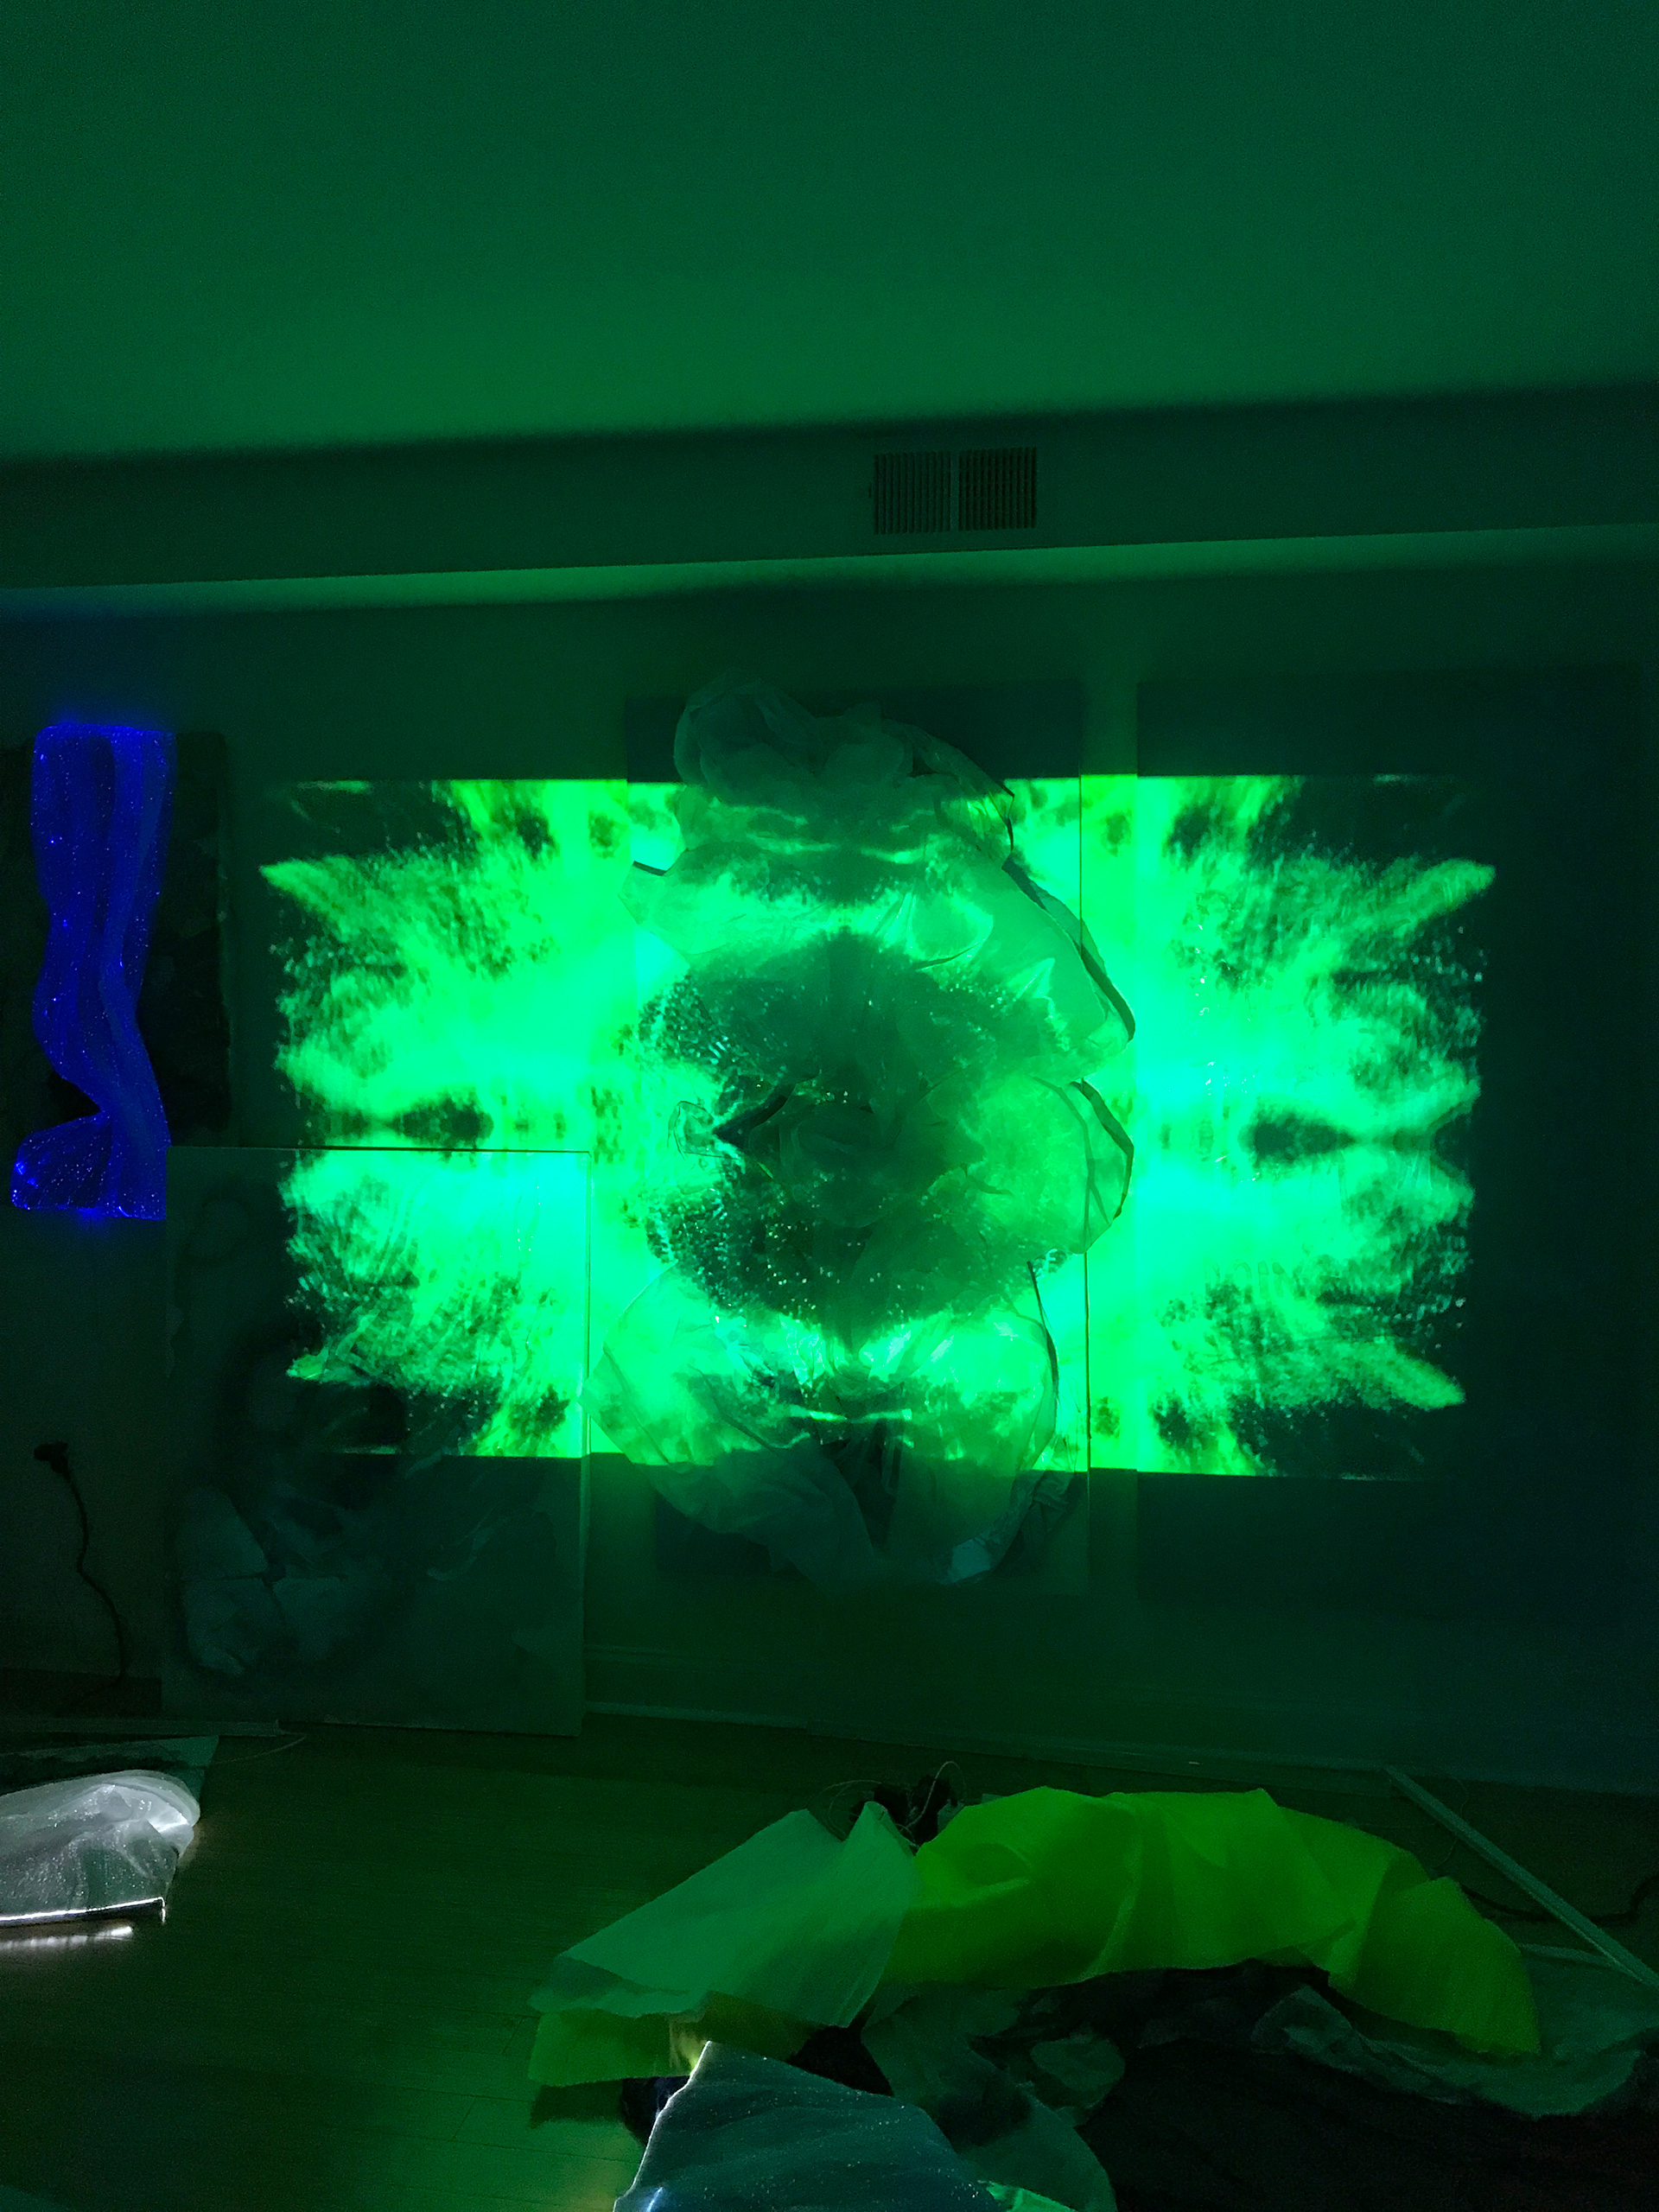 Anemone - an audiovisual installation part of Ksenia's new body of work | Save The Oceans | Ksenia Salion | STIRworld